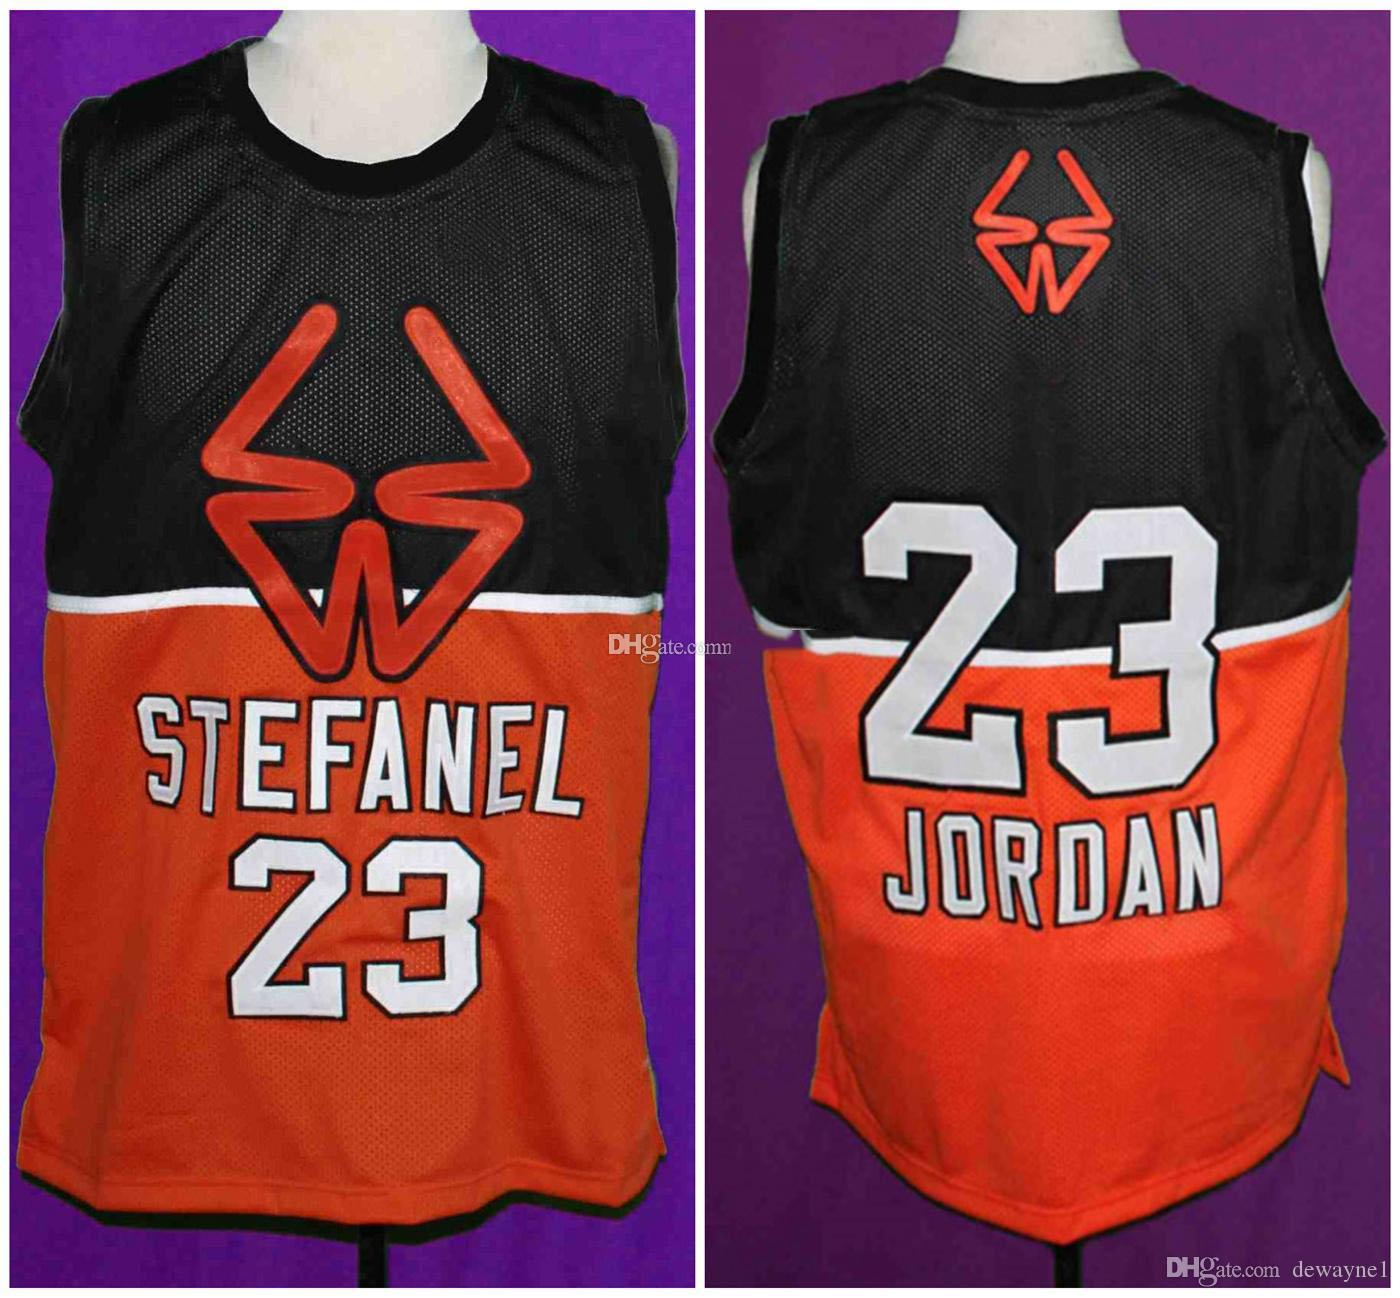 best service 58cd2 a85e8 1985 Stefanel Trieste Michael MJ #23 Exhibition Game Retro Basketball  Jersey Men s Stitched Custom Any Number Name Jerseys